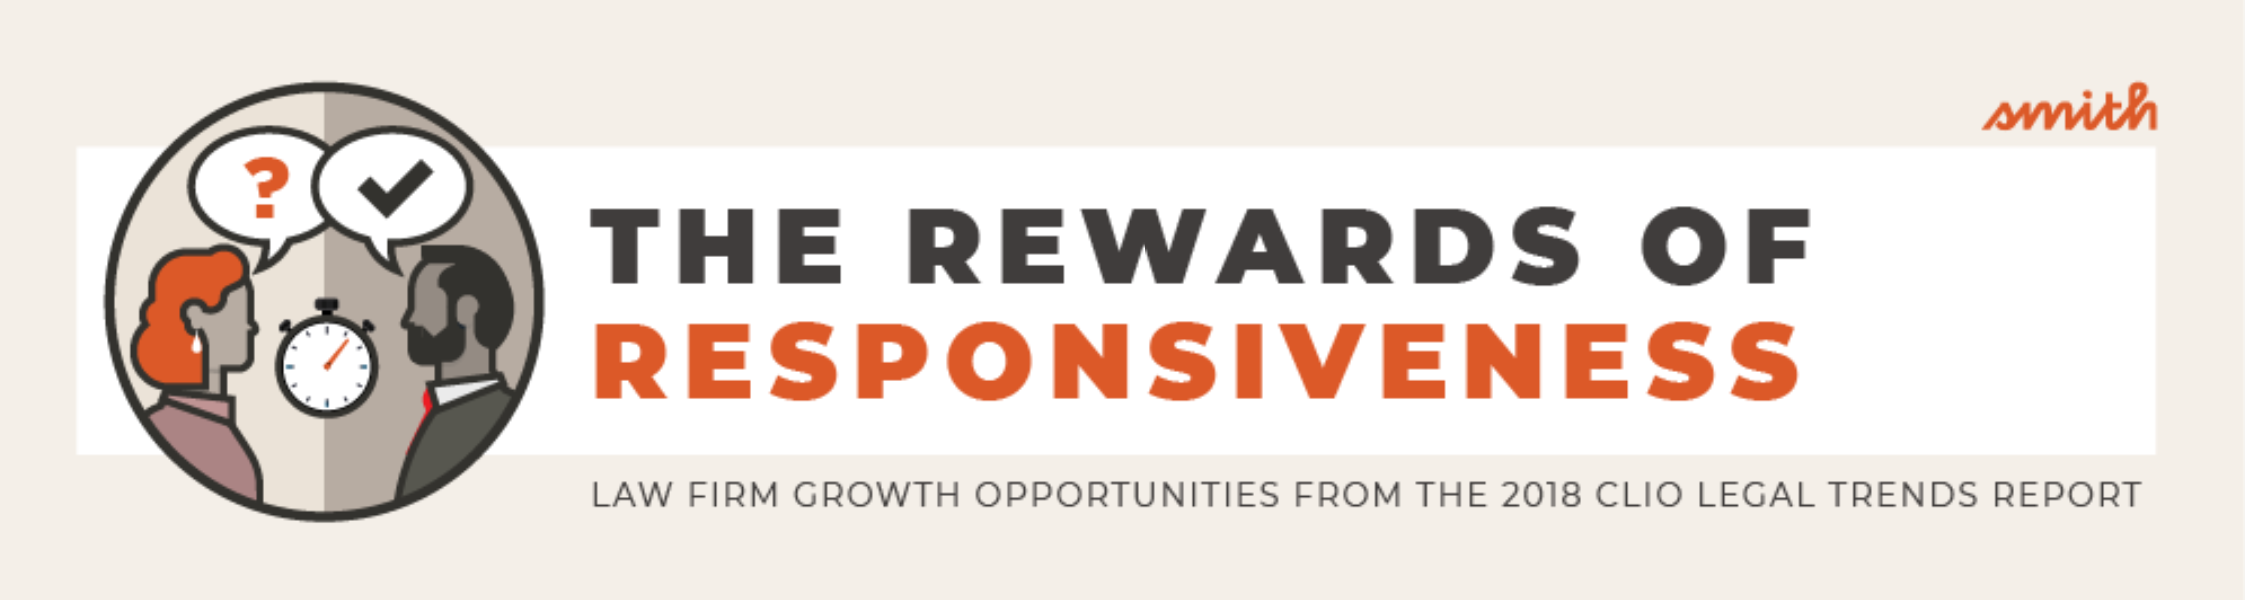 INFOGRAPHIC: The Rewards of Responsiveness: Law Firm Growth Opportunities from the 2018 Clio Legal Trends Report